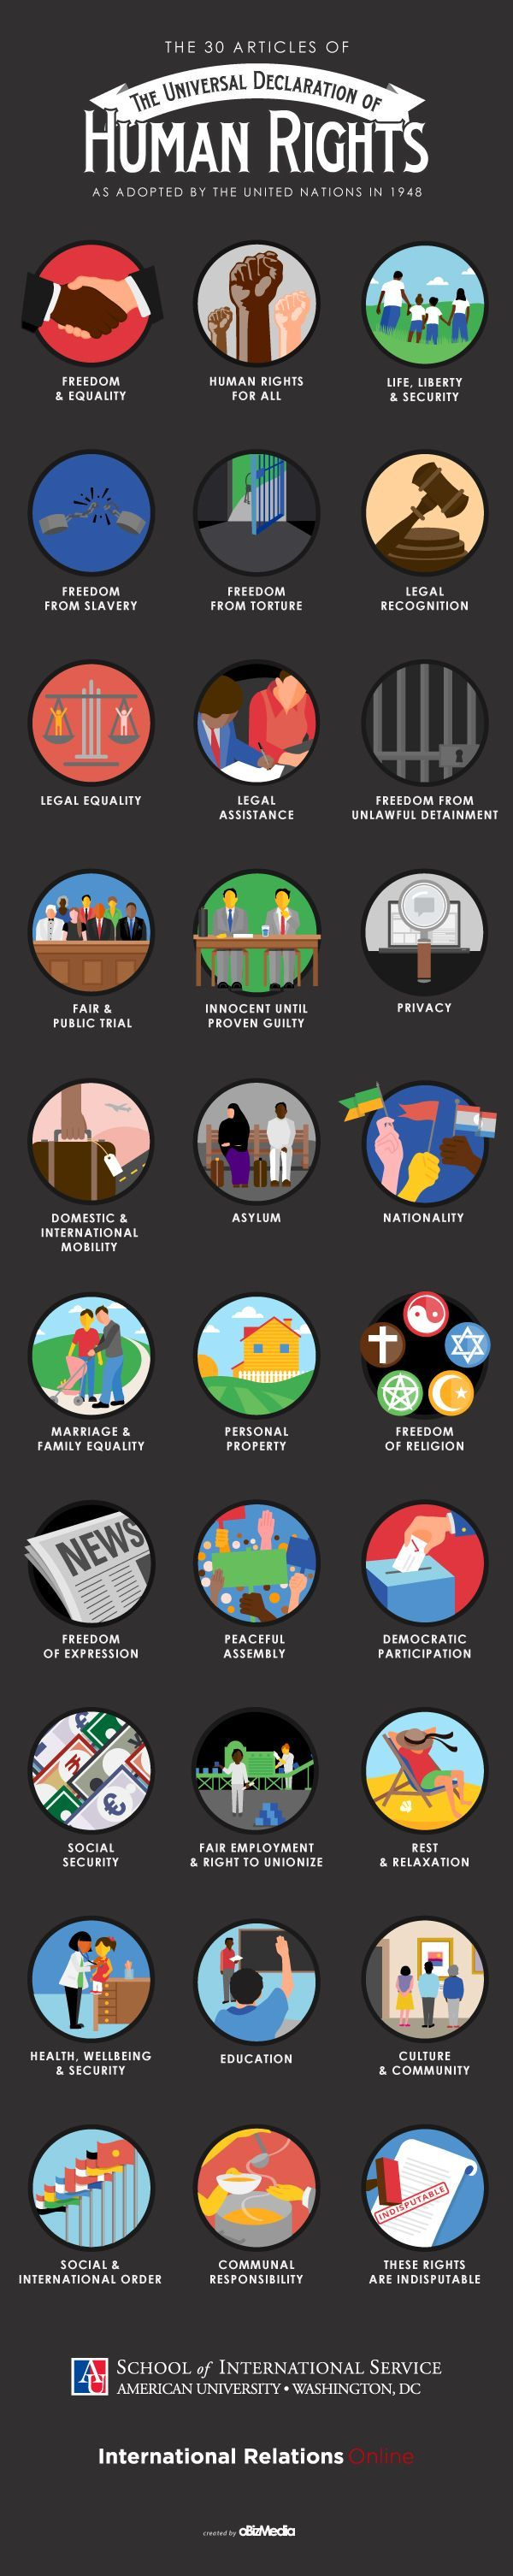 Understanding our basic HUMAN RIGHTS (The 30 articles of the Universal Declaration of Human Rights as adopted by the United Nations in 1948)  A great graphic to remind us of what we all have a right to.  (scheduled via http://www.tailwindapp.com?utm_source=pinterest&utm_medium=twpin&utm_content=post58662626&utm_campaign=scheduler_attribution)